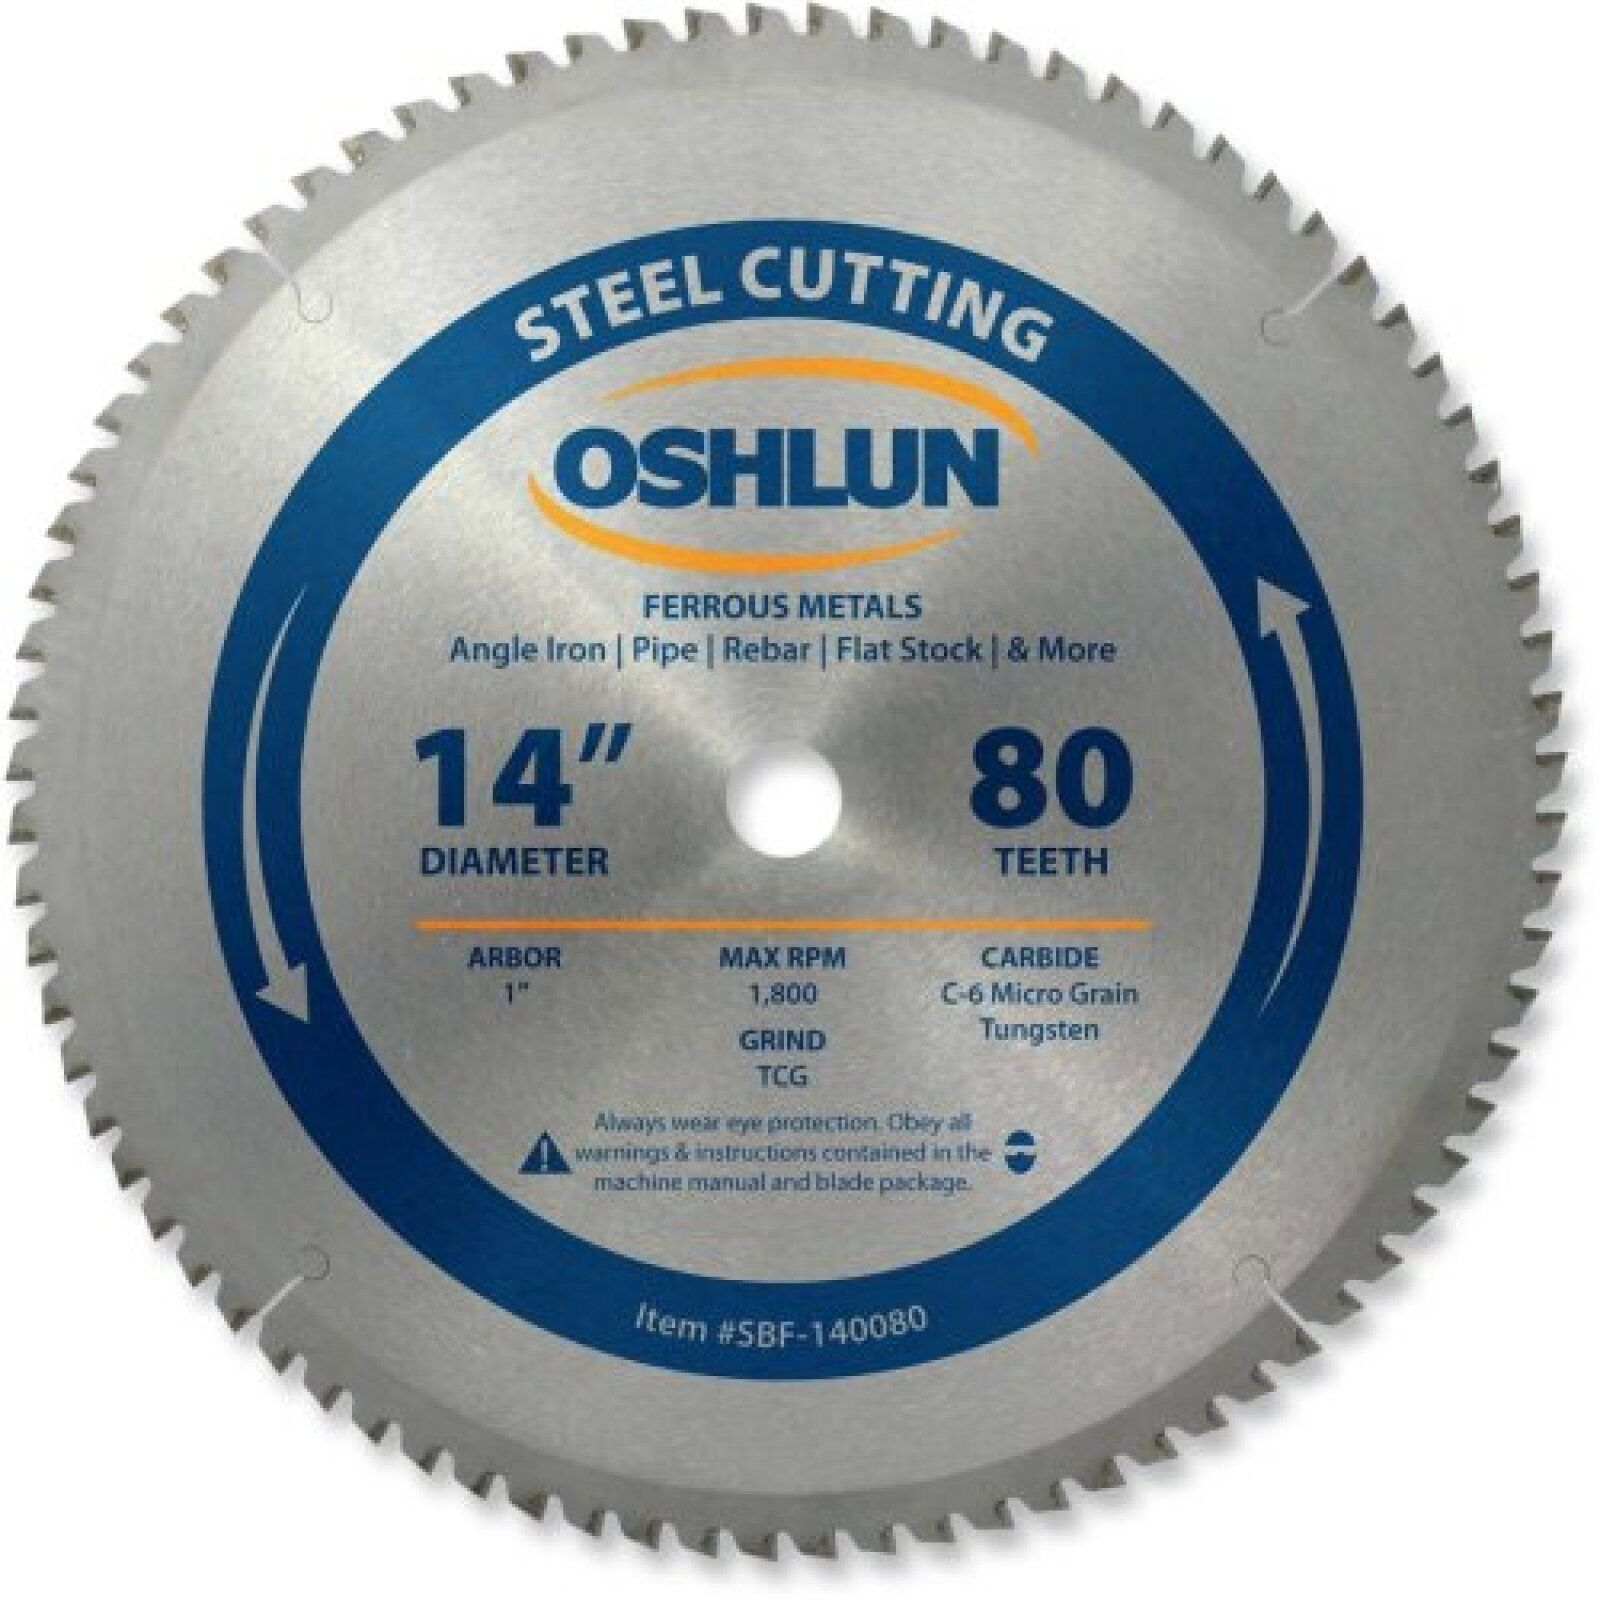 Details about Ferrous Metal Cutting Circular Saw Blade 14 Inch 80 Tooth  Pipe Mild Steel Cutter